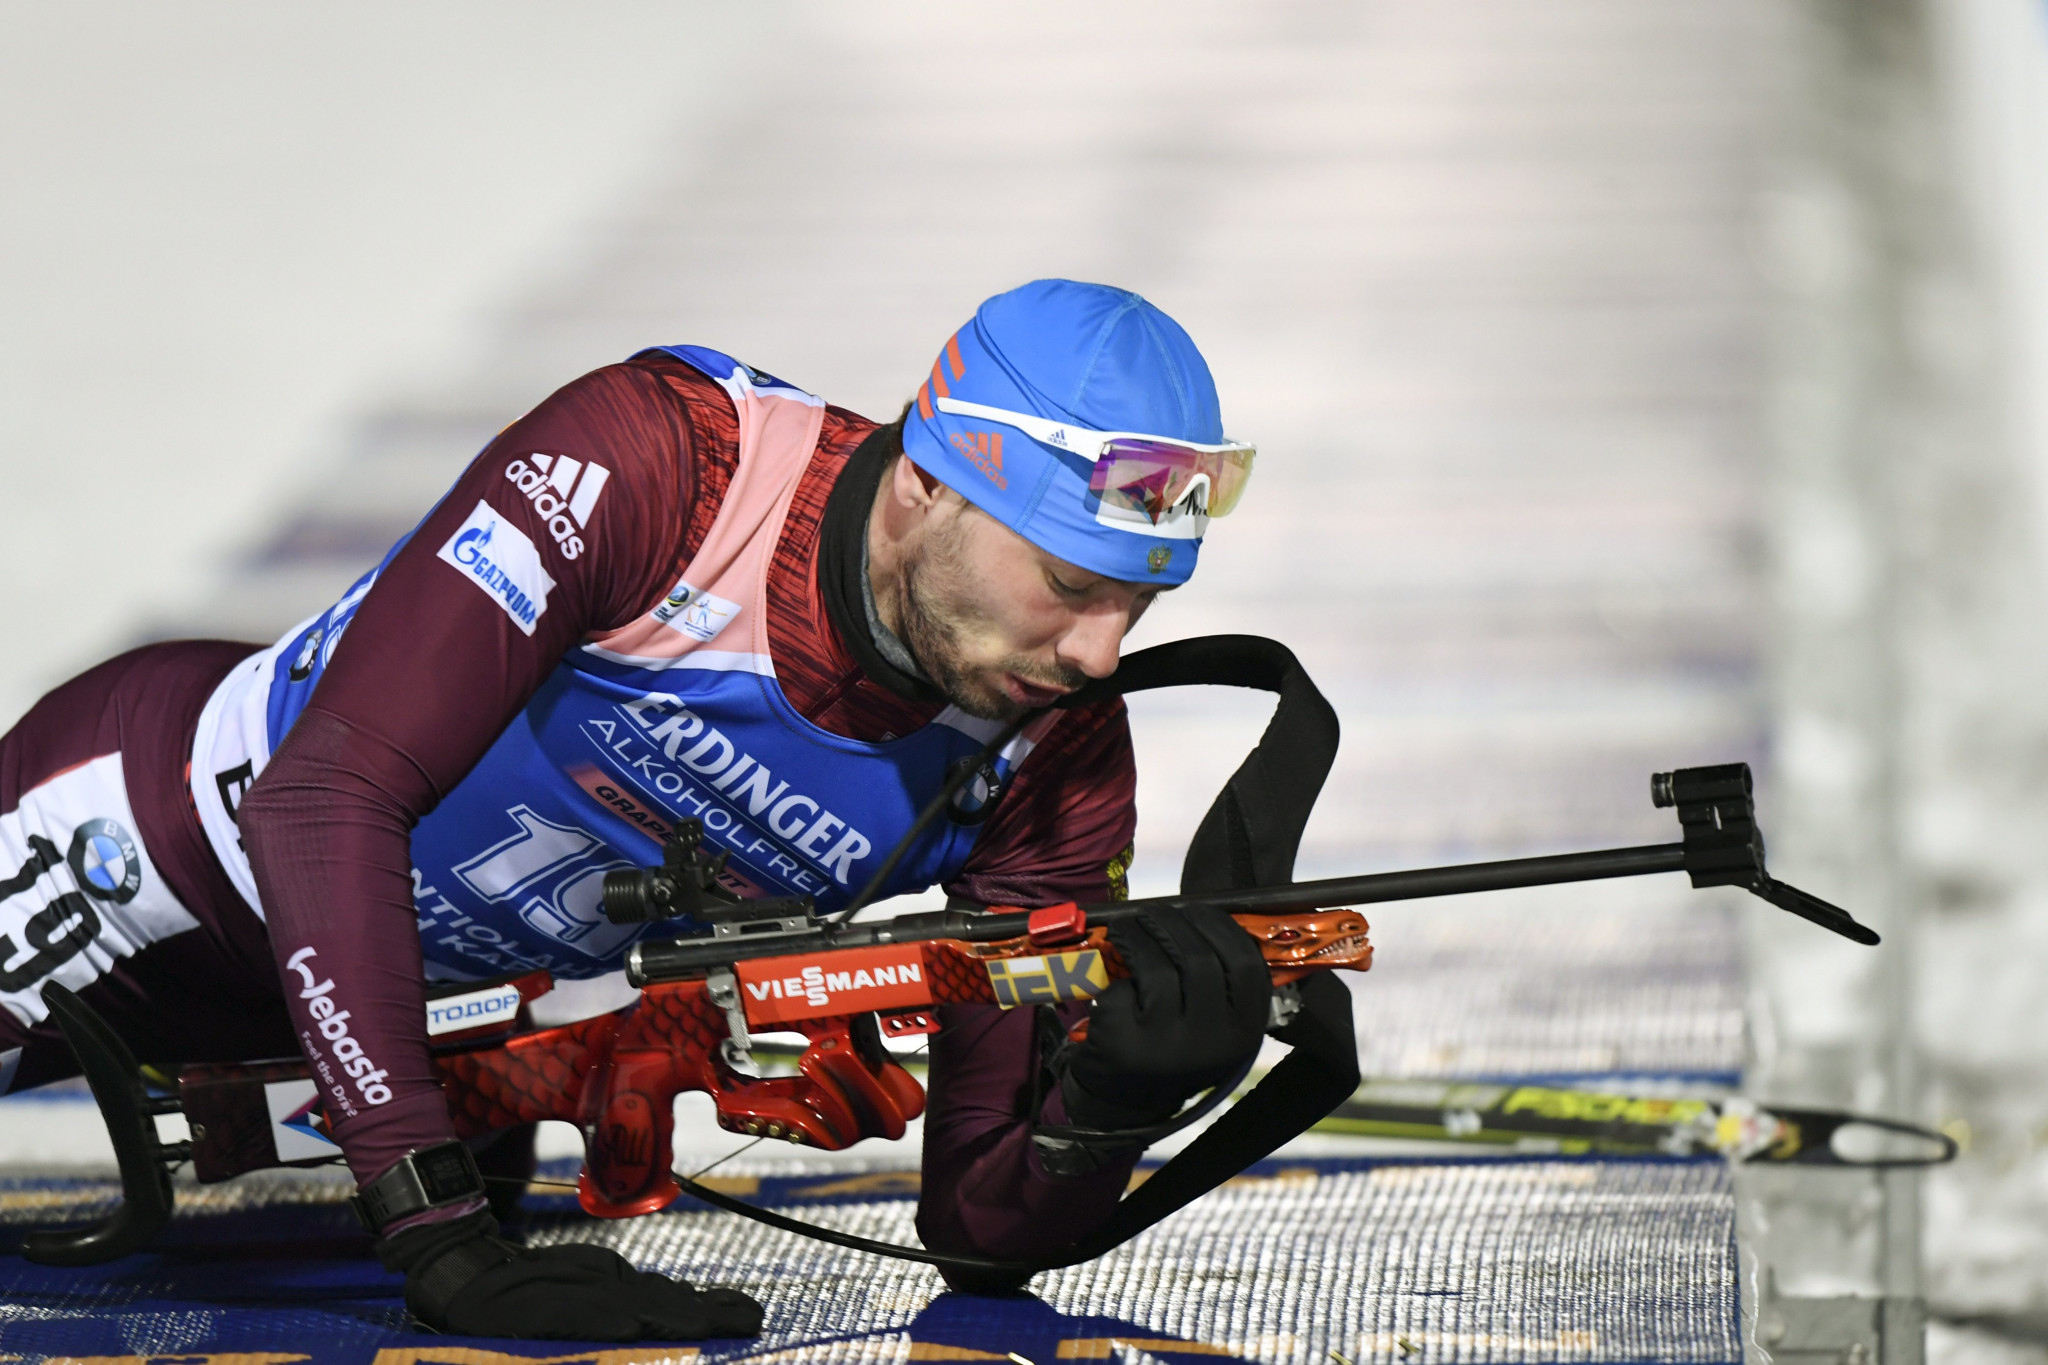 Austrian police investigation part of ongoing probe of IBU as probe draws mixed response from Russian officials